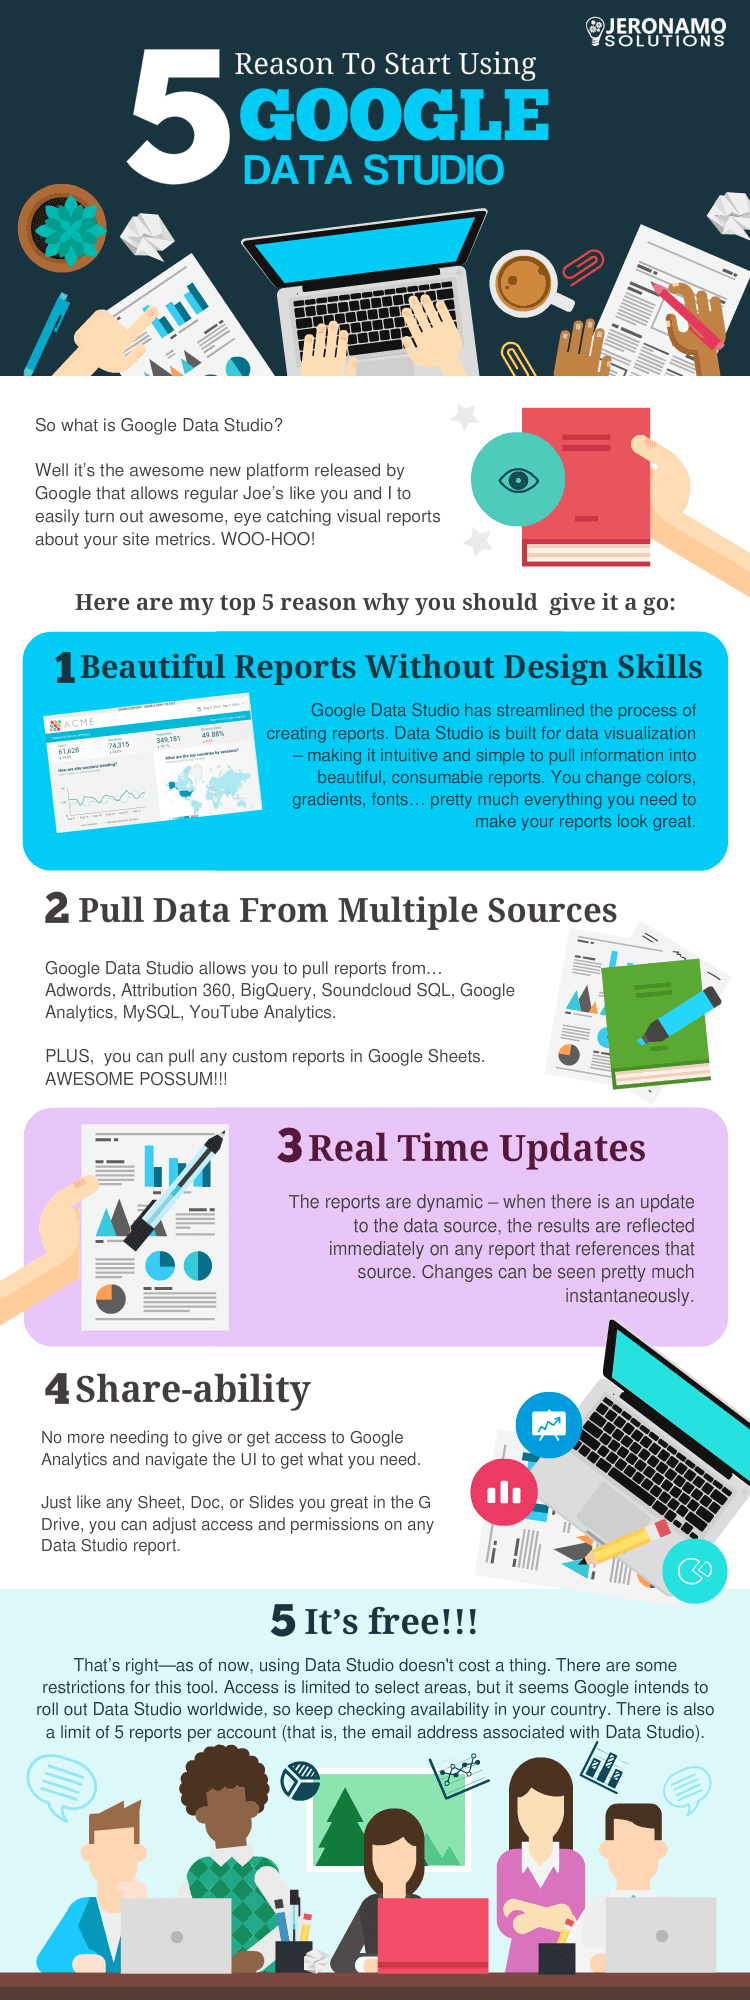 5 reasons to start using google data studio